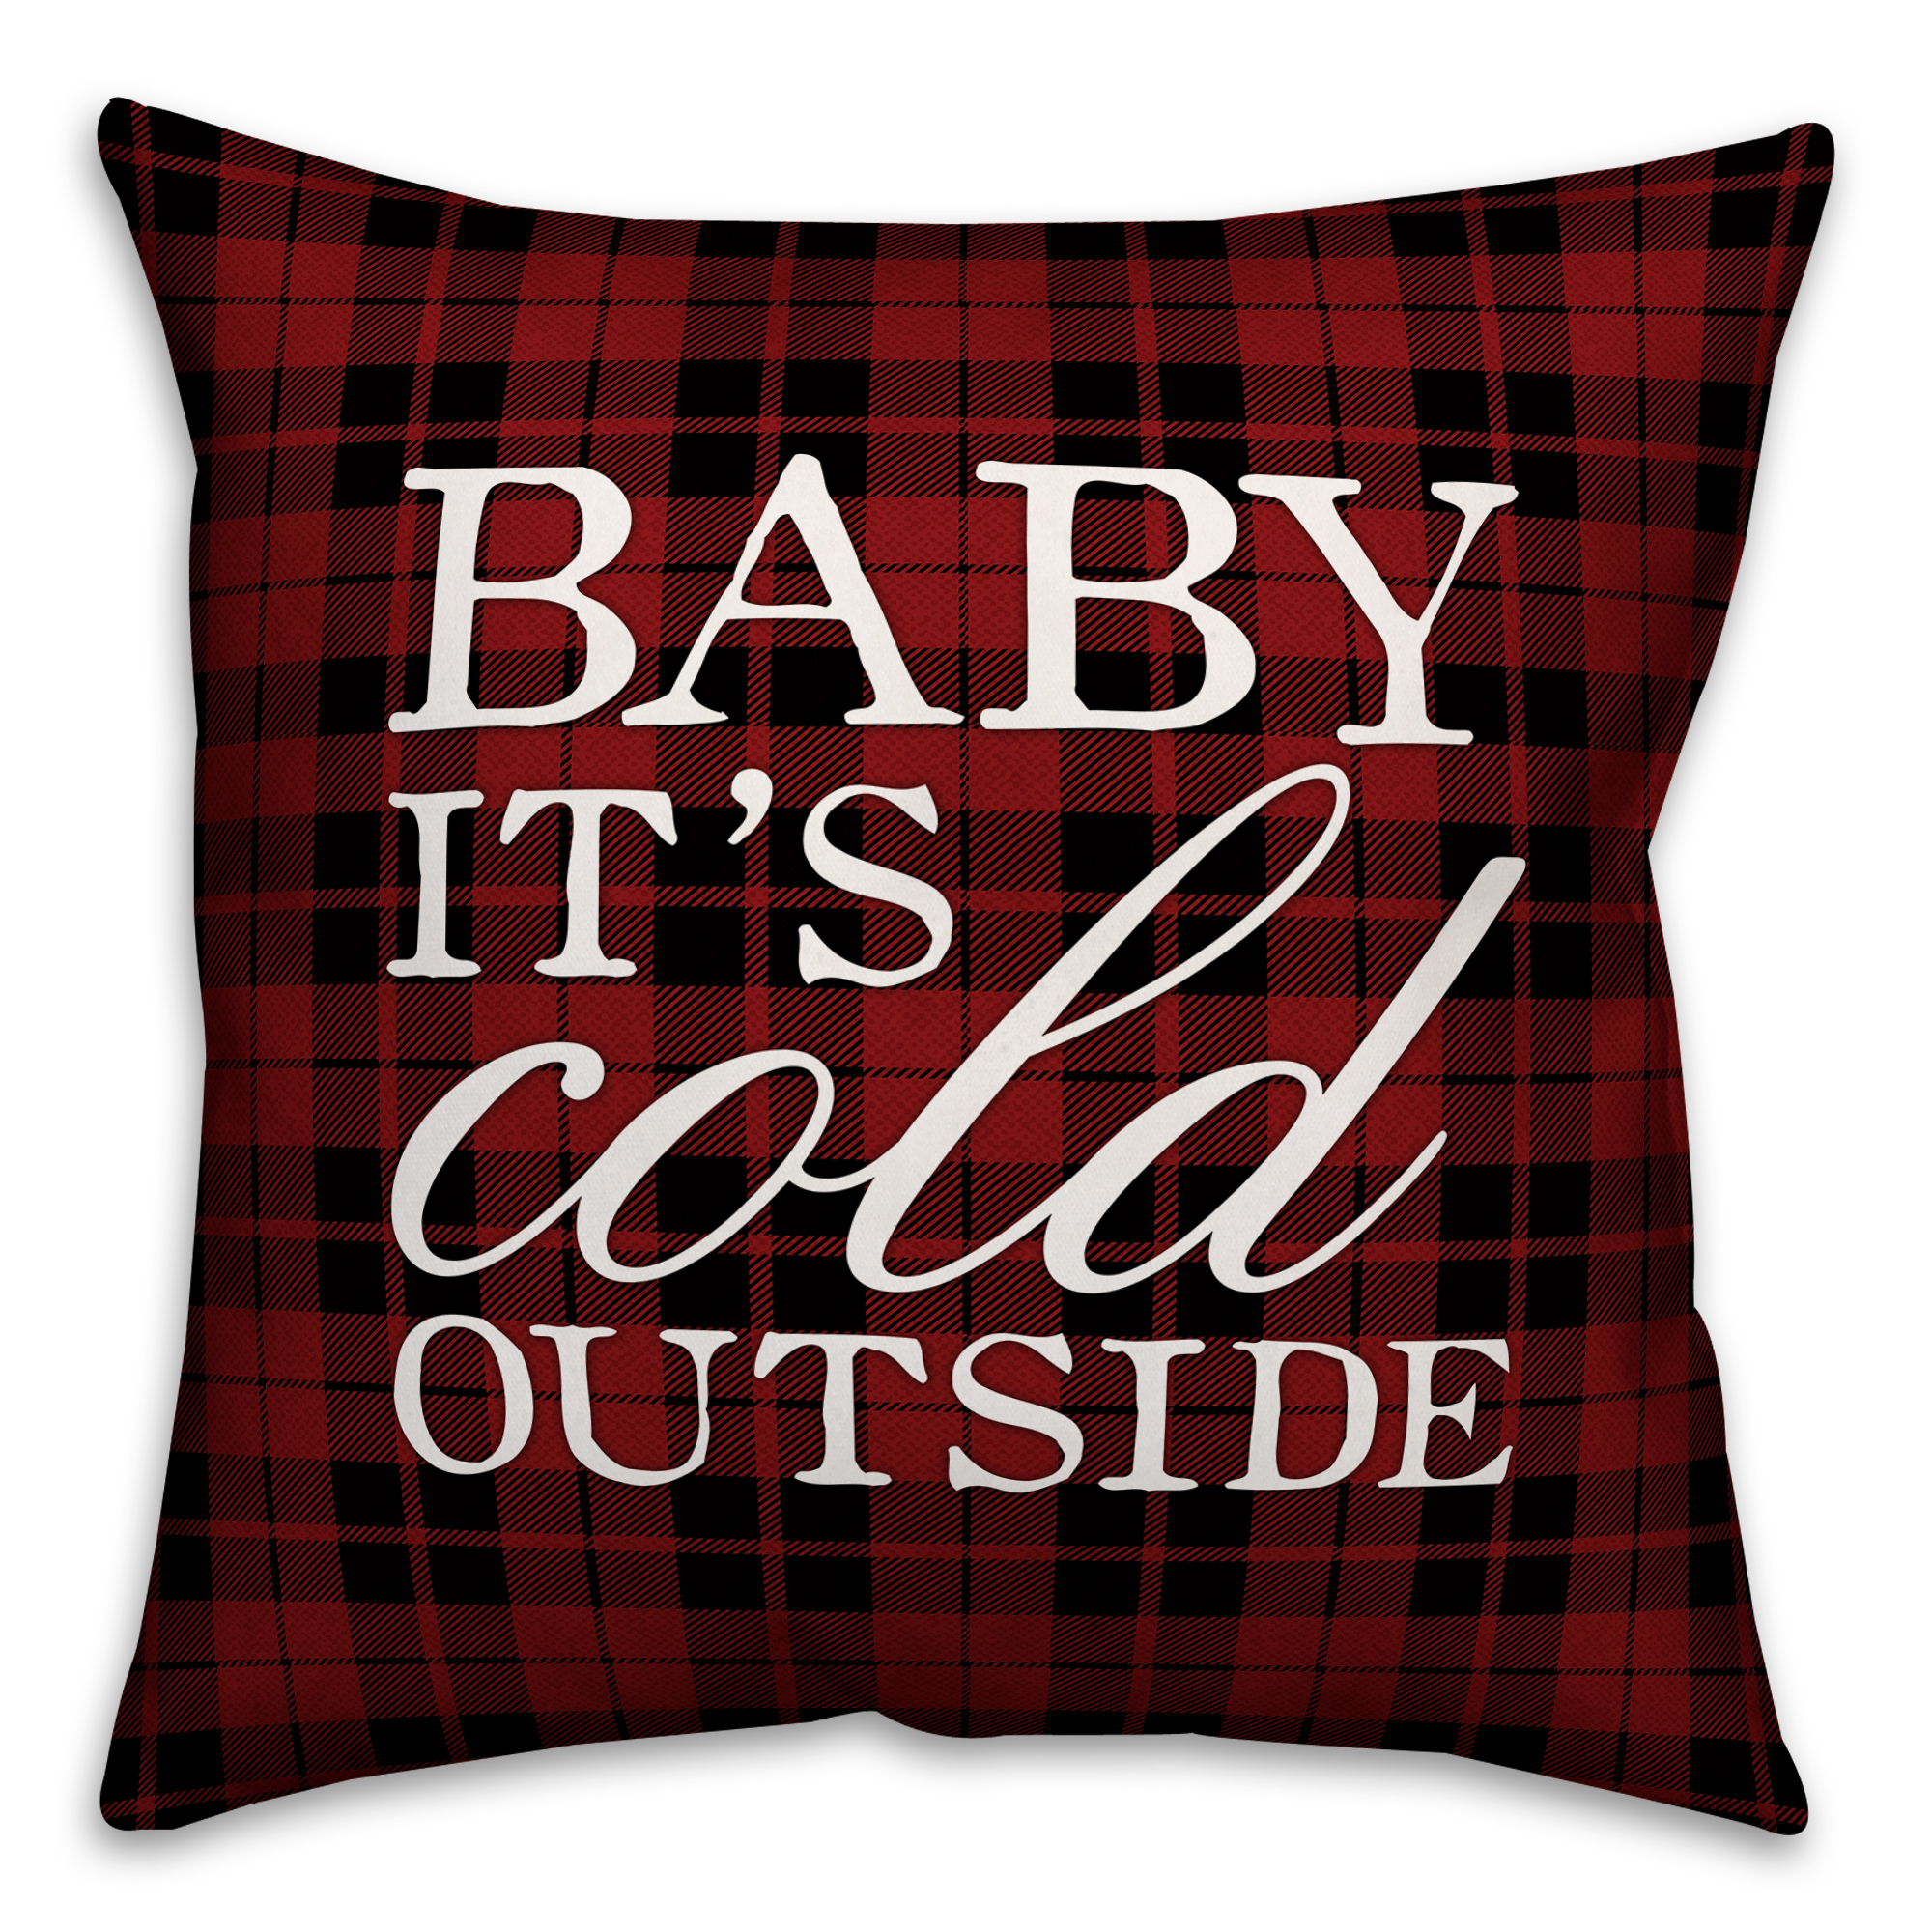 Baby It's Cold Outside 20x20 Spun Poly Pillow